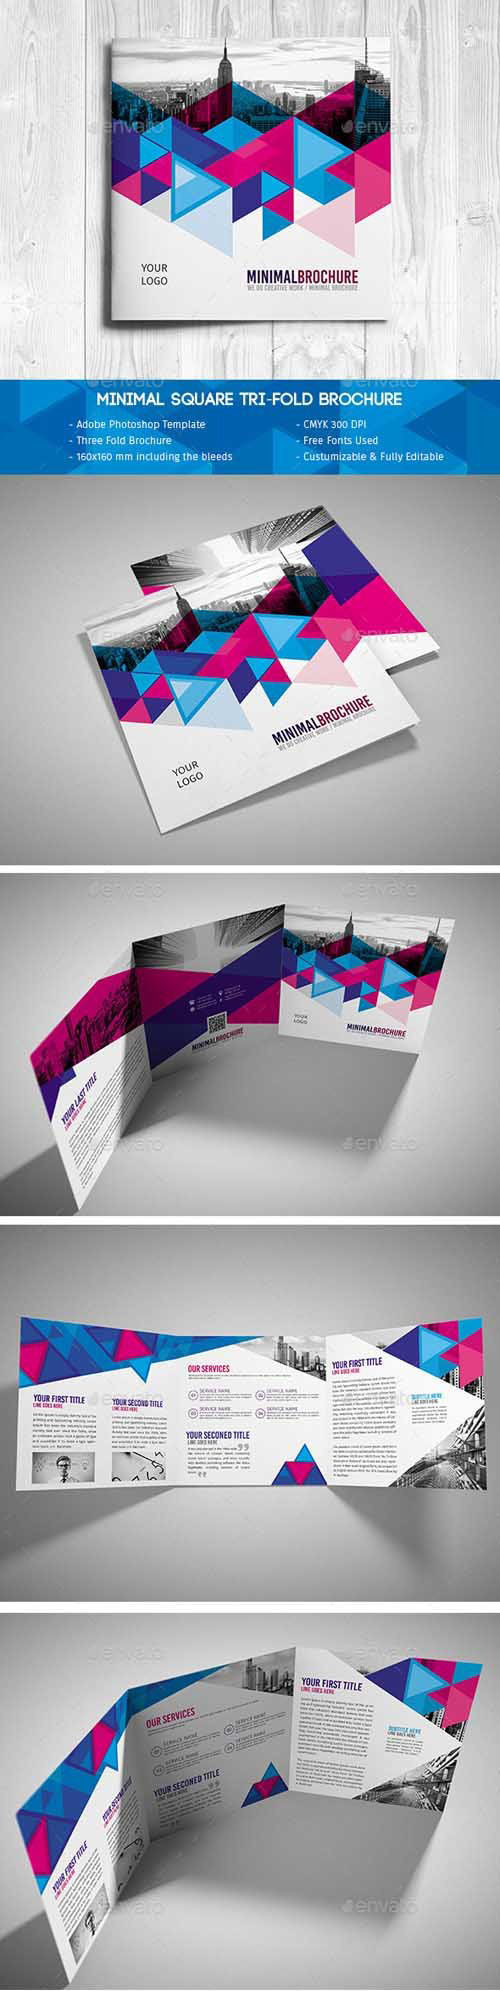 Minimal Square TriFold Brochure PSD Template PSD Templates Free - Brochure photoshop template